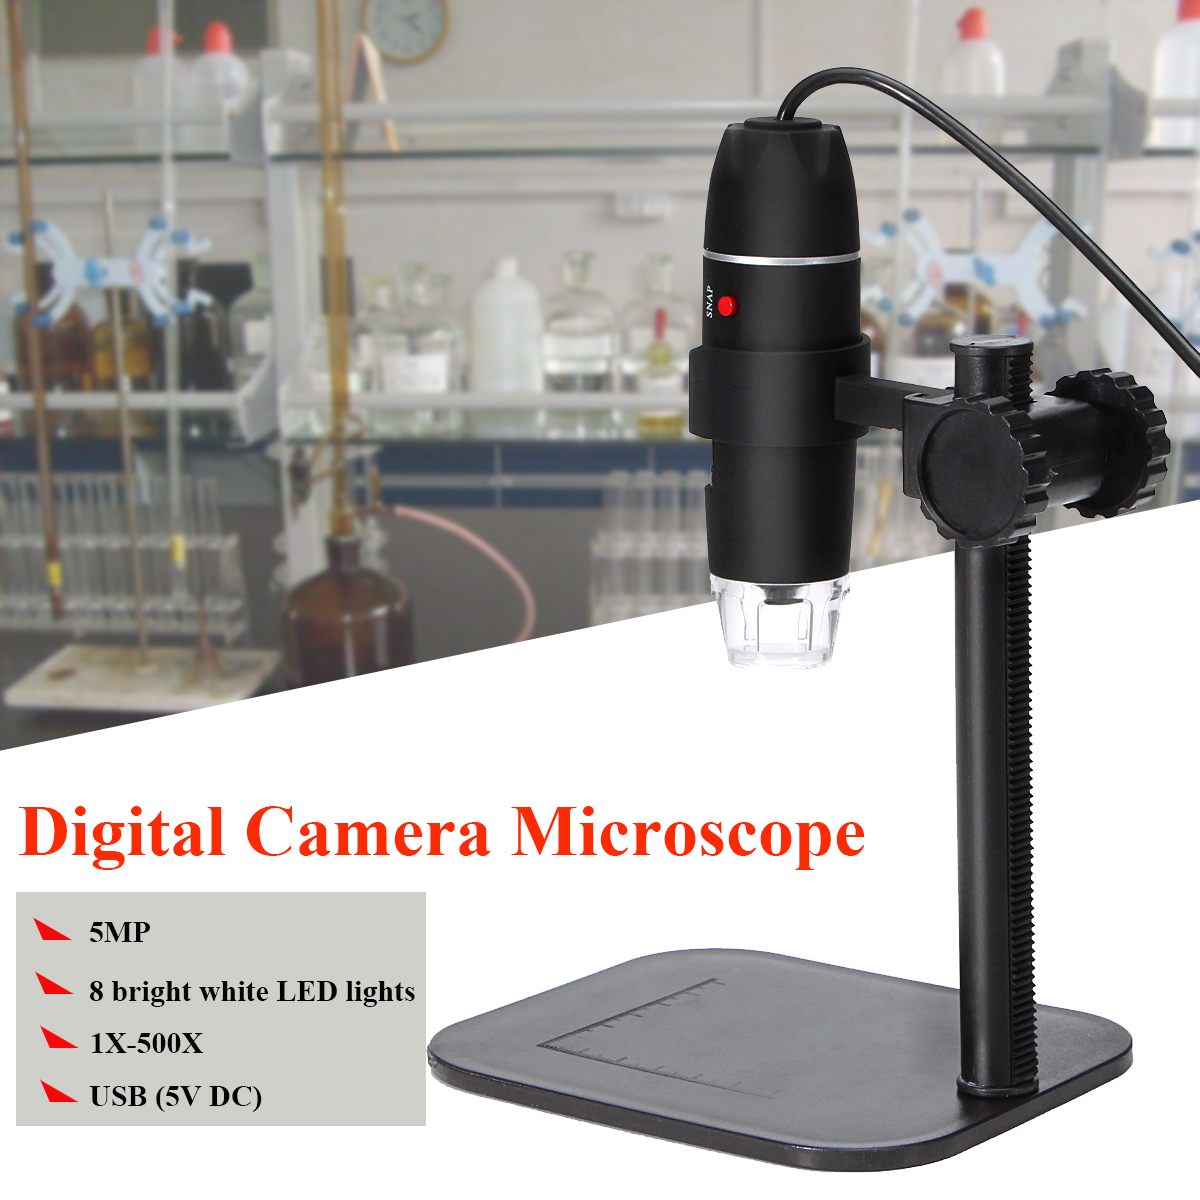 5.0MP 8 LED USB Digital Camera Microscope Magnifier Camera Vidio 1X-500X 5V DC